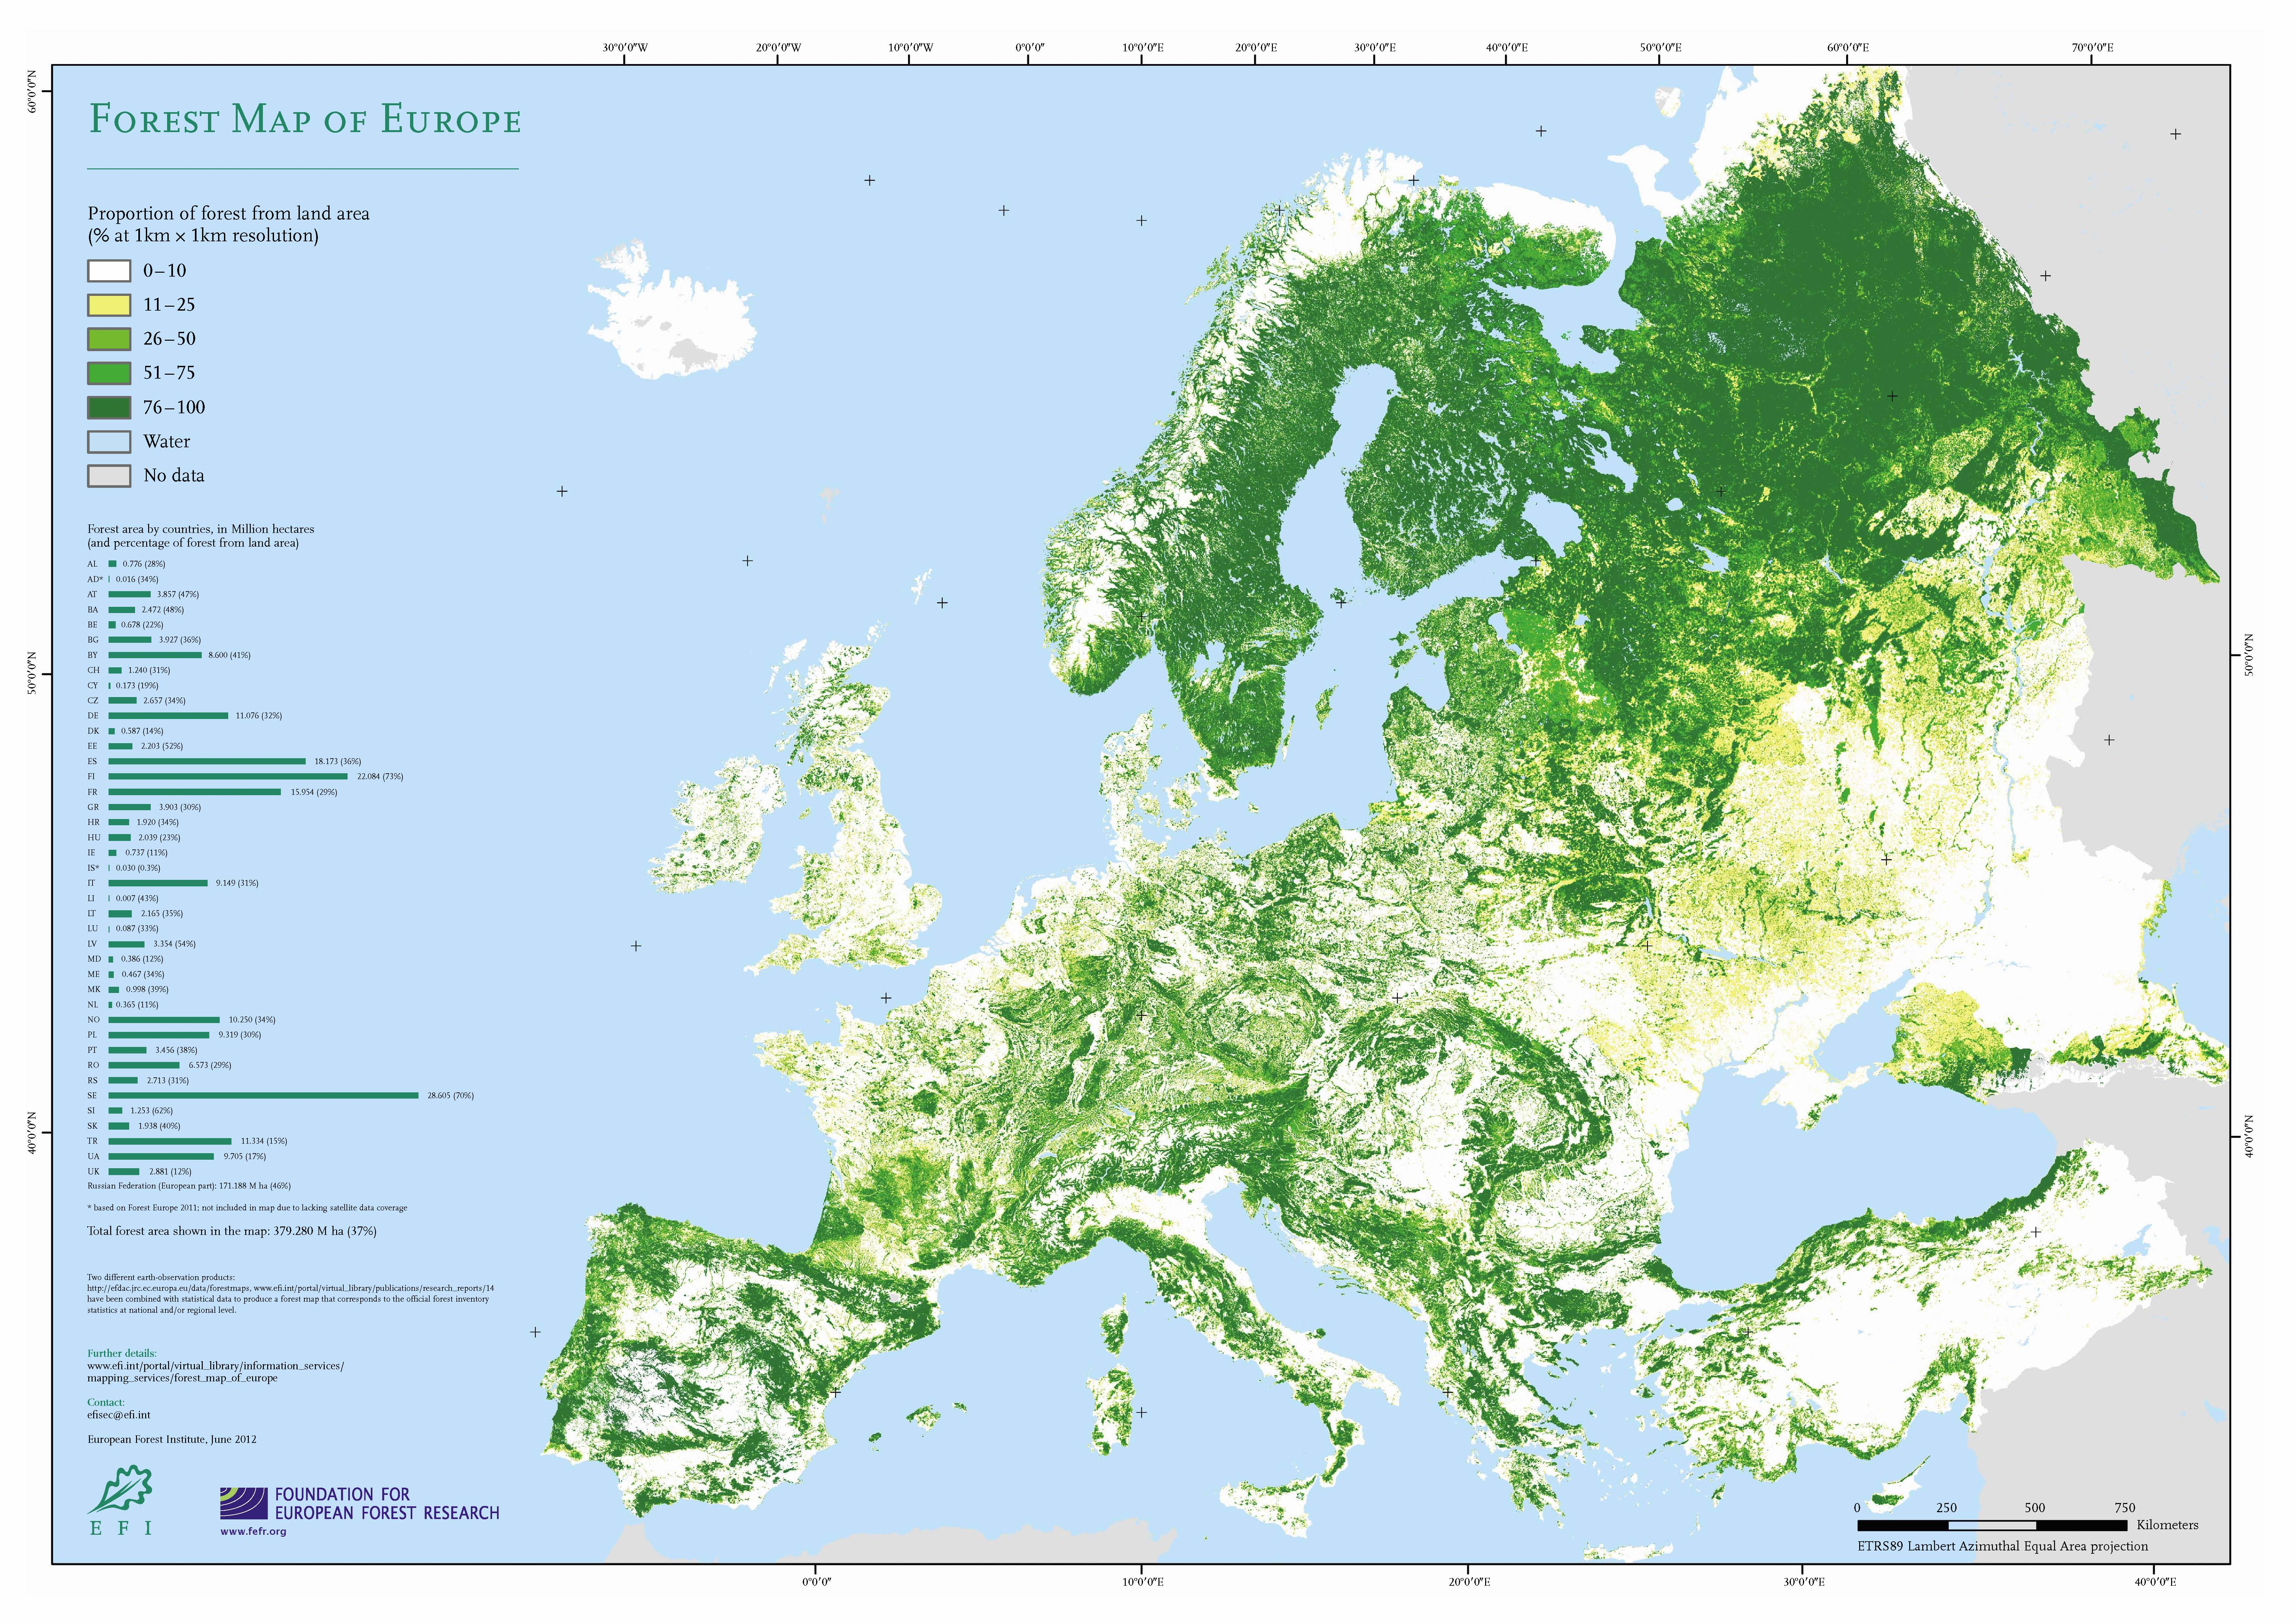 Map Of Europe In 1000.Europe Forest Map With Percentage Of Forest Area By Country